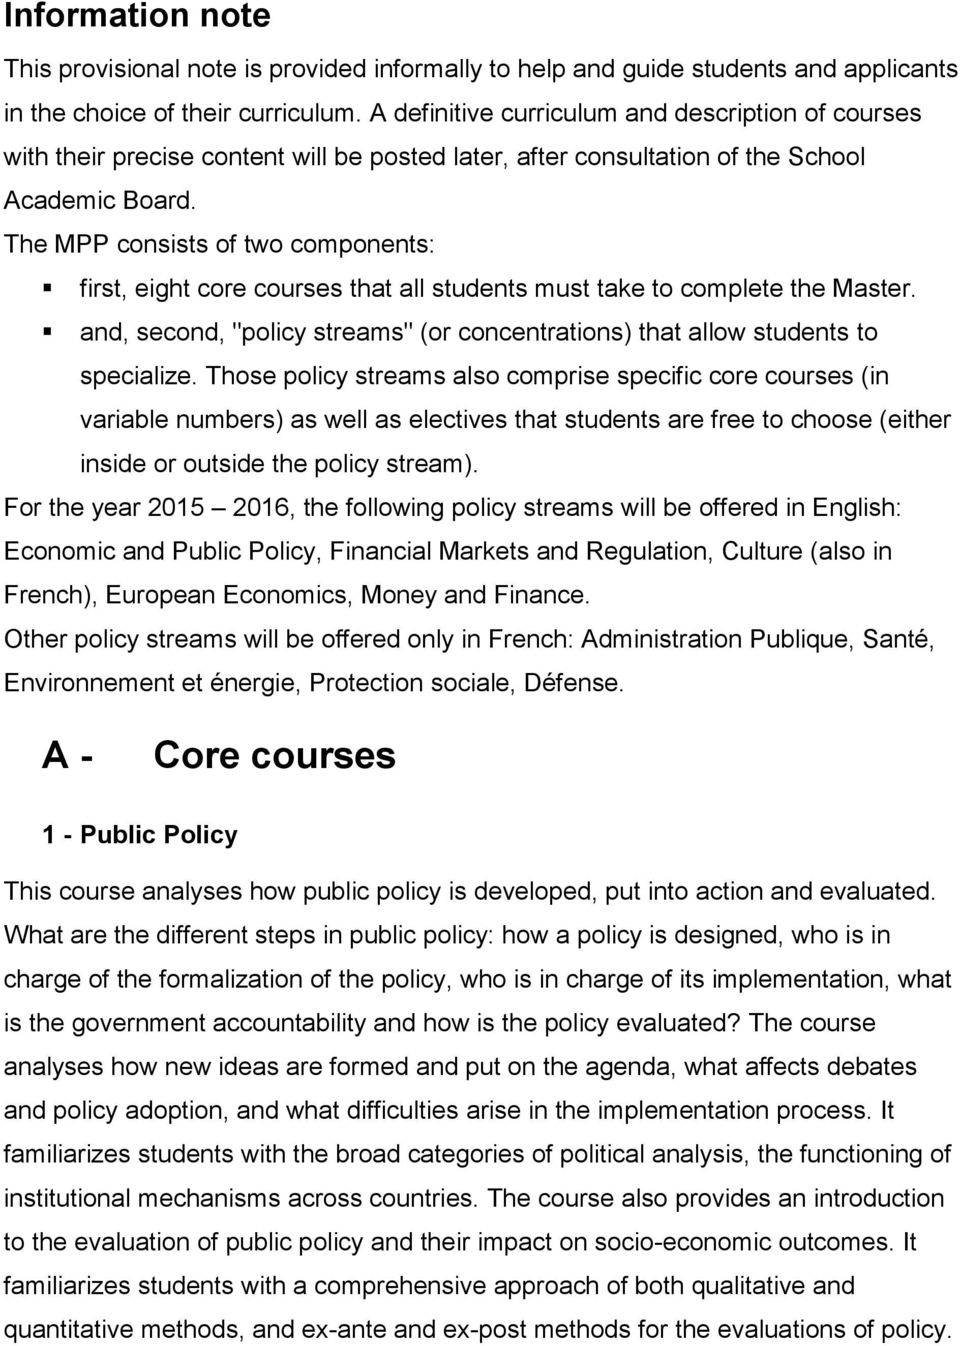 "The MPP consists of two components: first, eight core courses that all students must take to complete the Master. and, second, ""policy streams"" (or concentrations) that allow students to specialize."